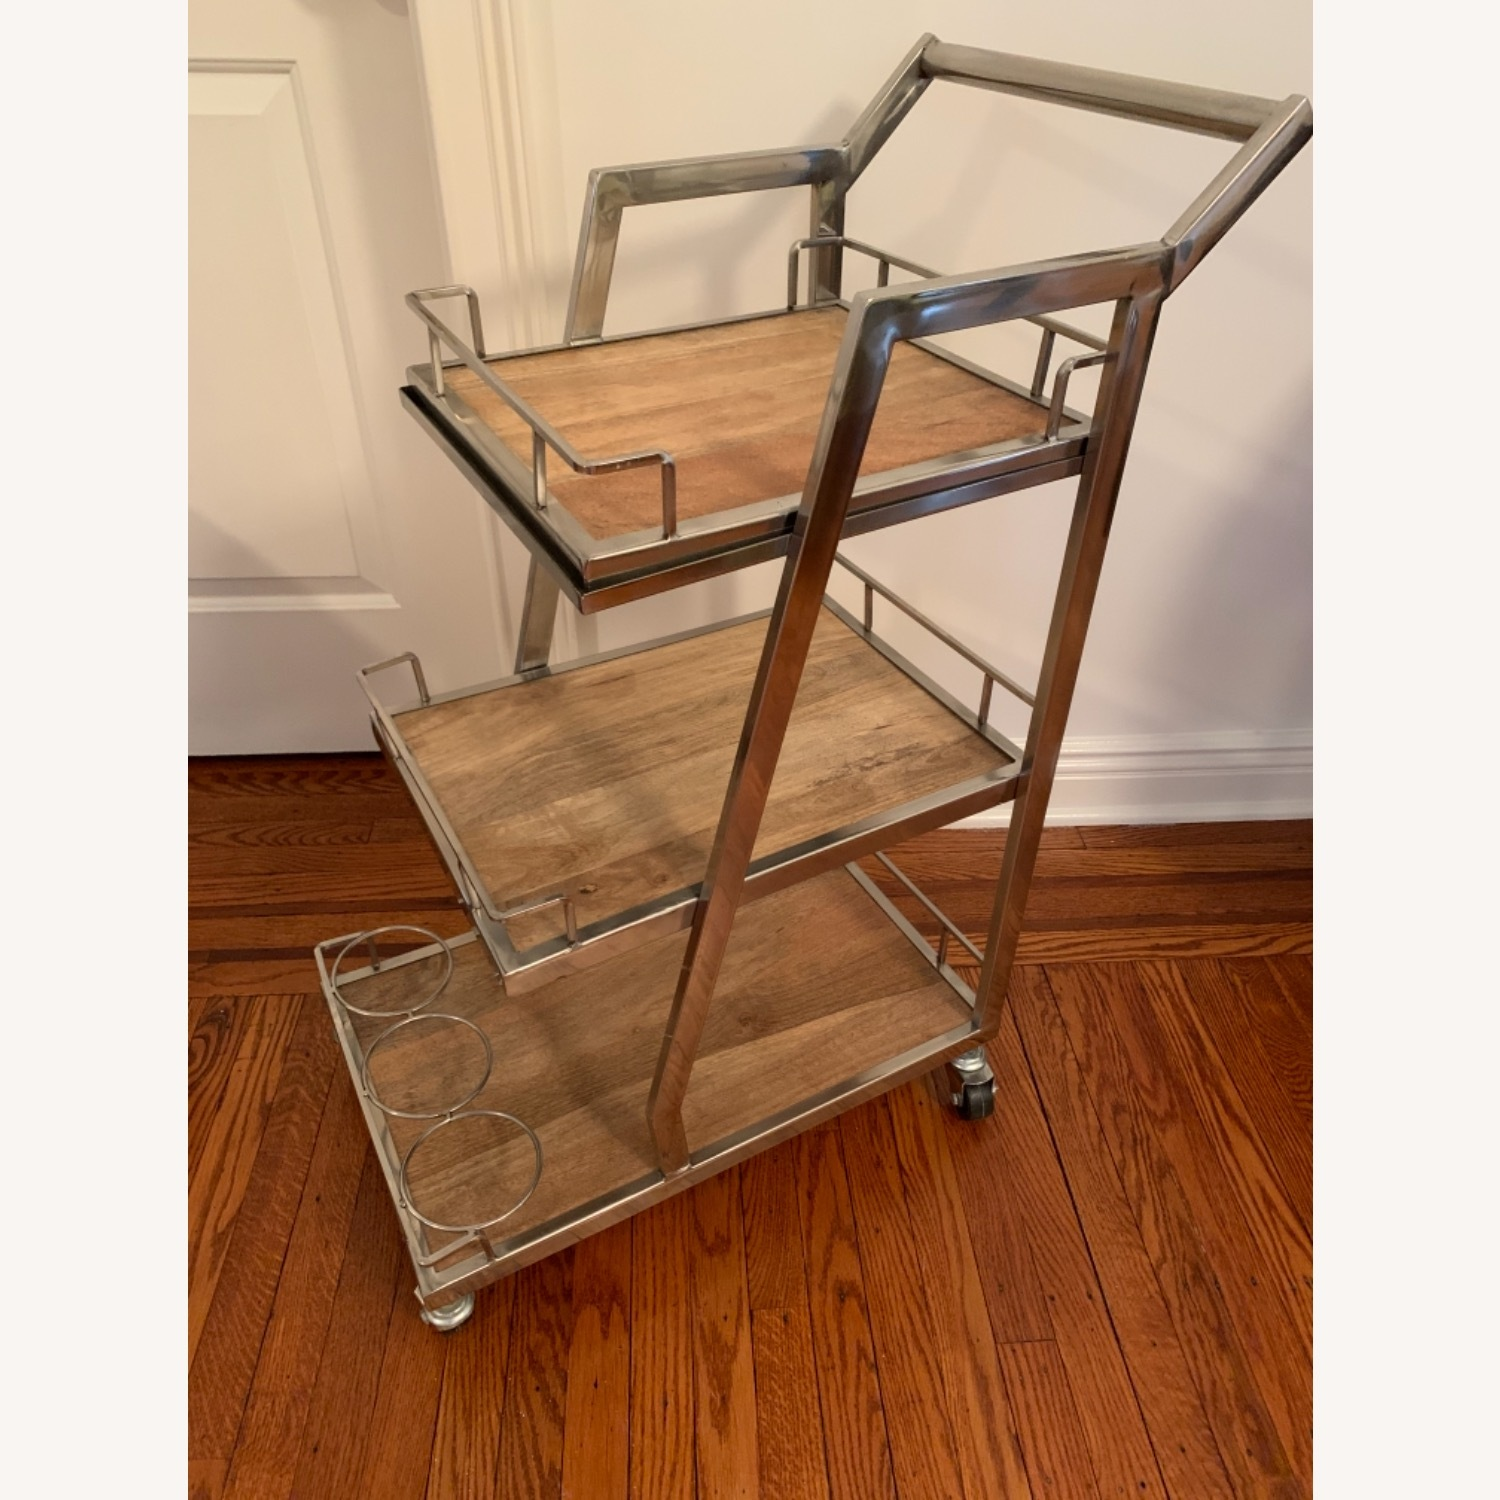 3 Tier Silver And Wood Bar Service Cart - image-1